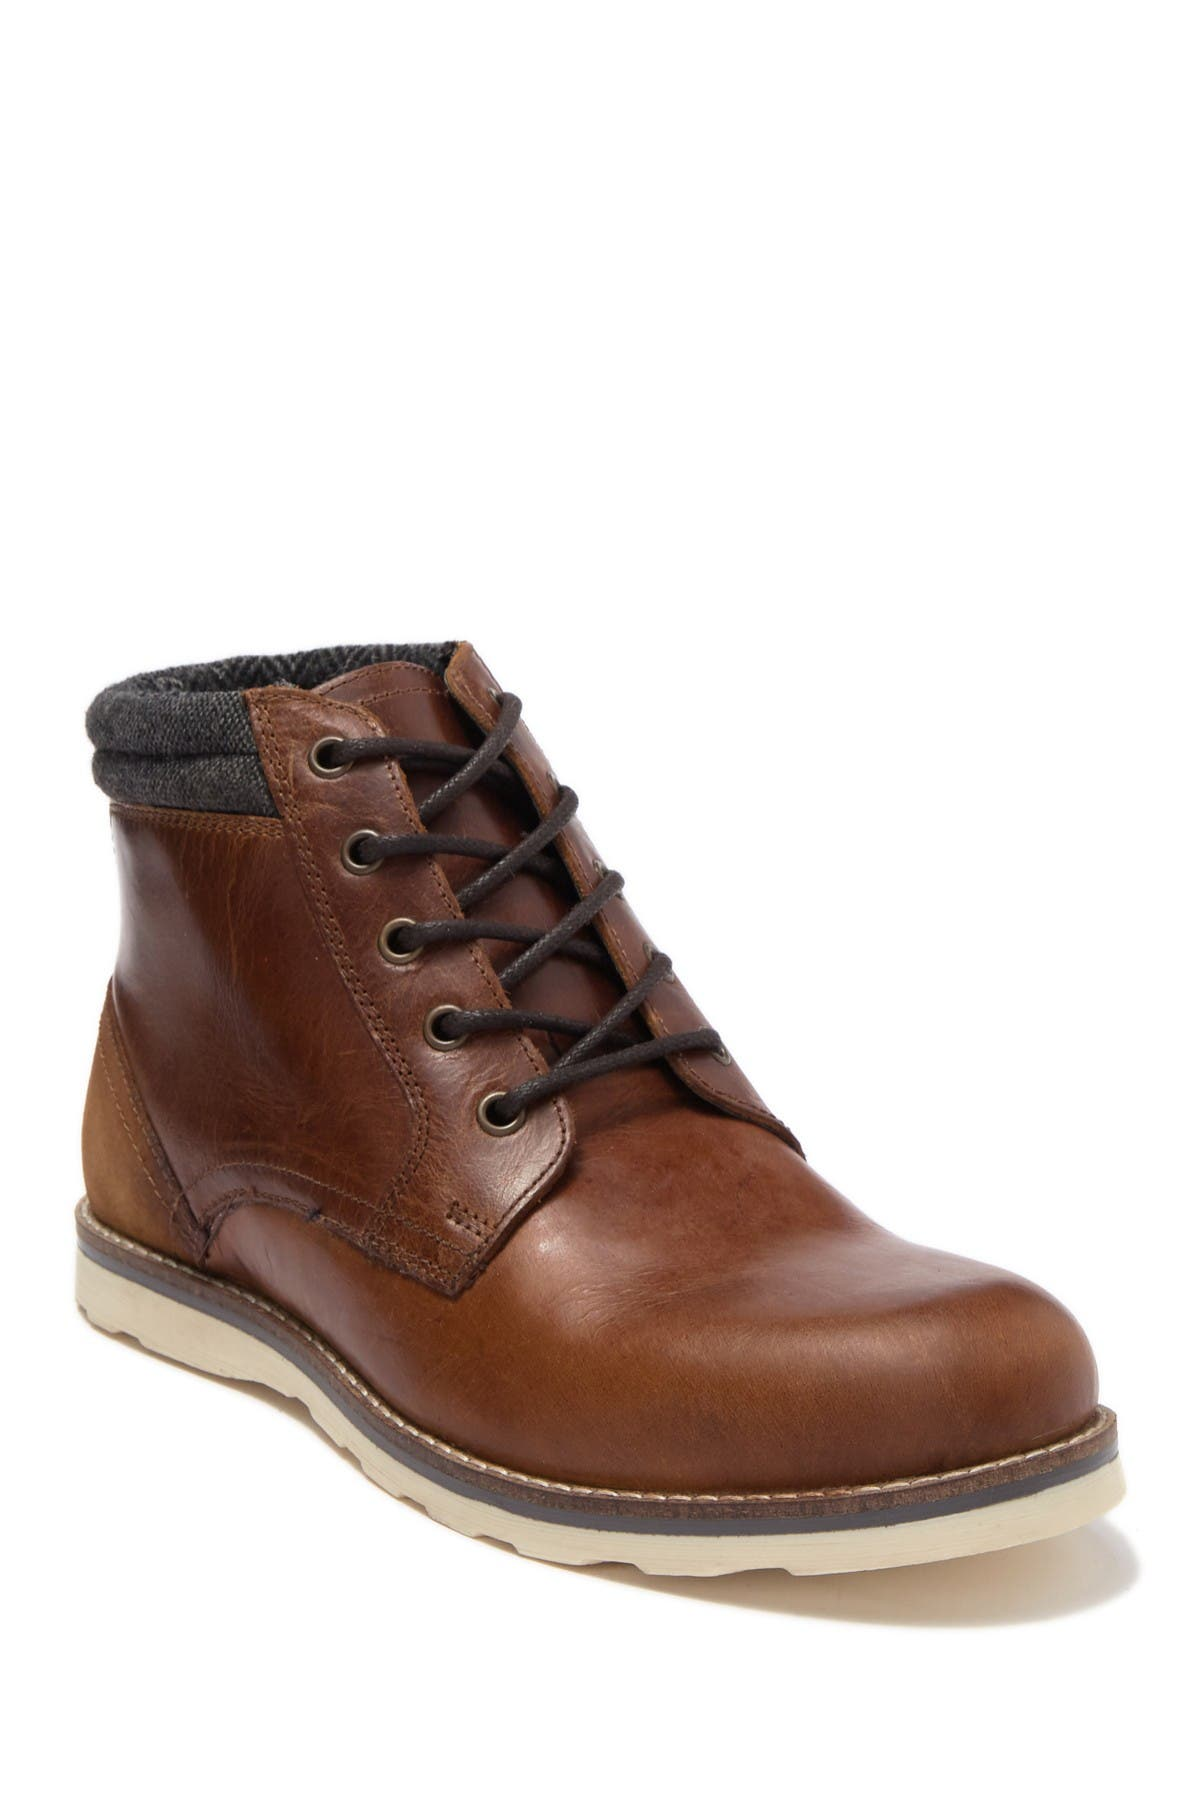 Image of Crevo Javiar Leather Boot